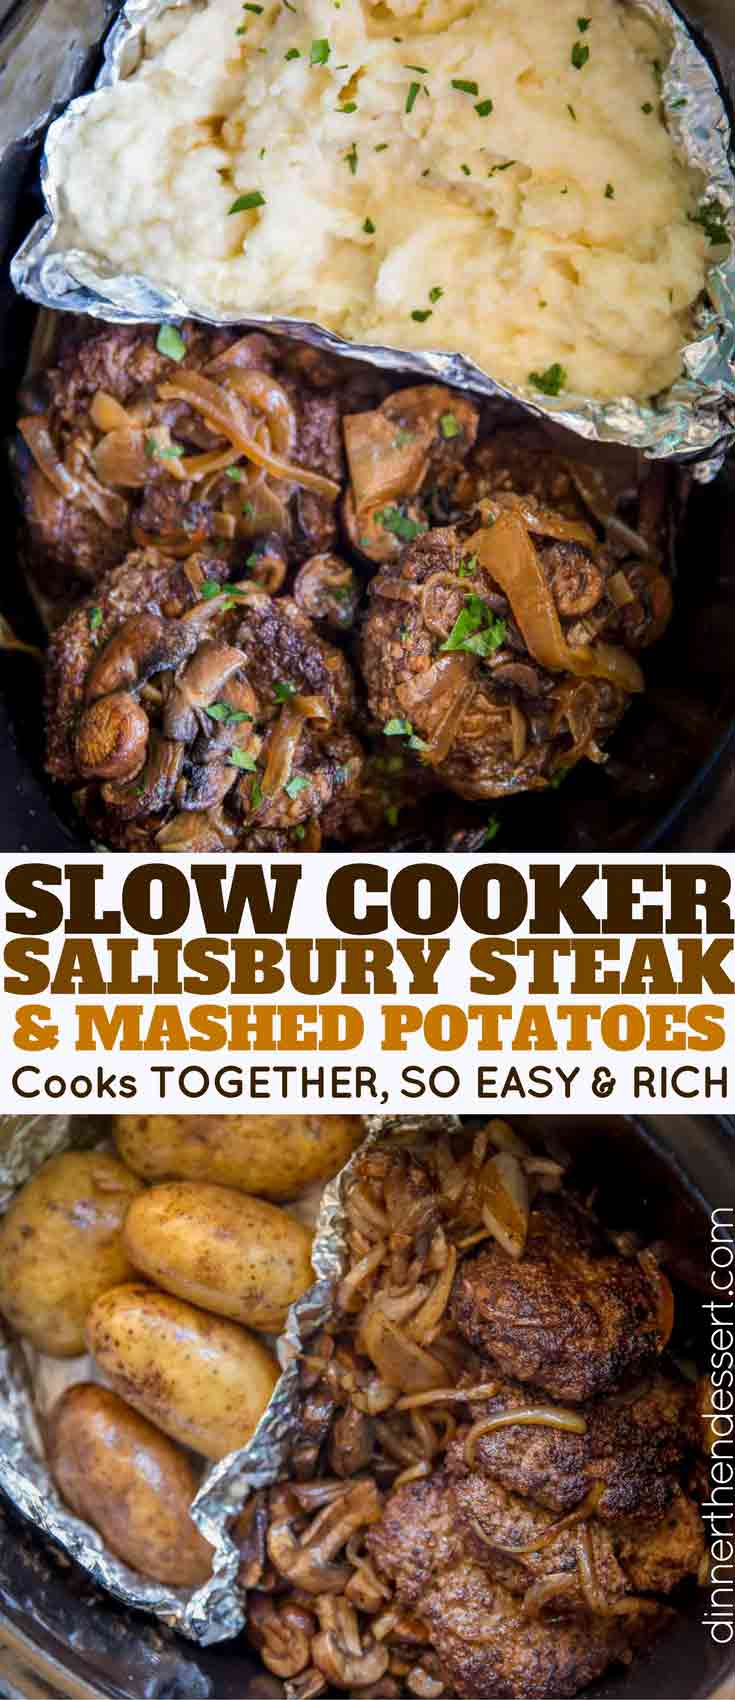 Slow Cooker Salisbury Steak and Mashed Potatoes in a SINGLE slow cooker with mashed potatoes, rich gravy, mushrooms and onions over tender beef patties.